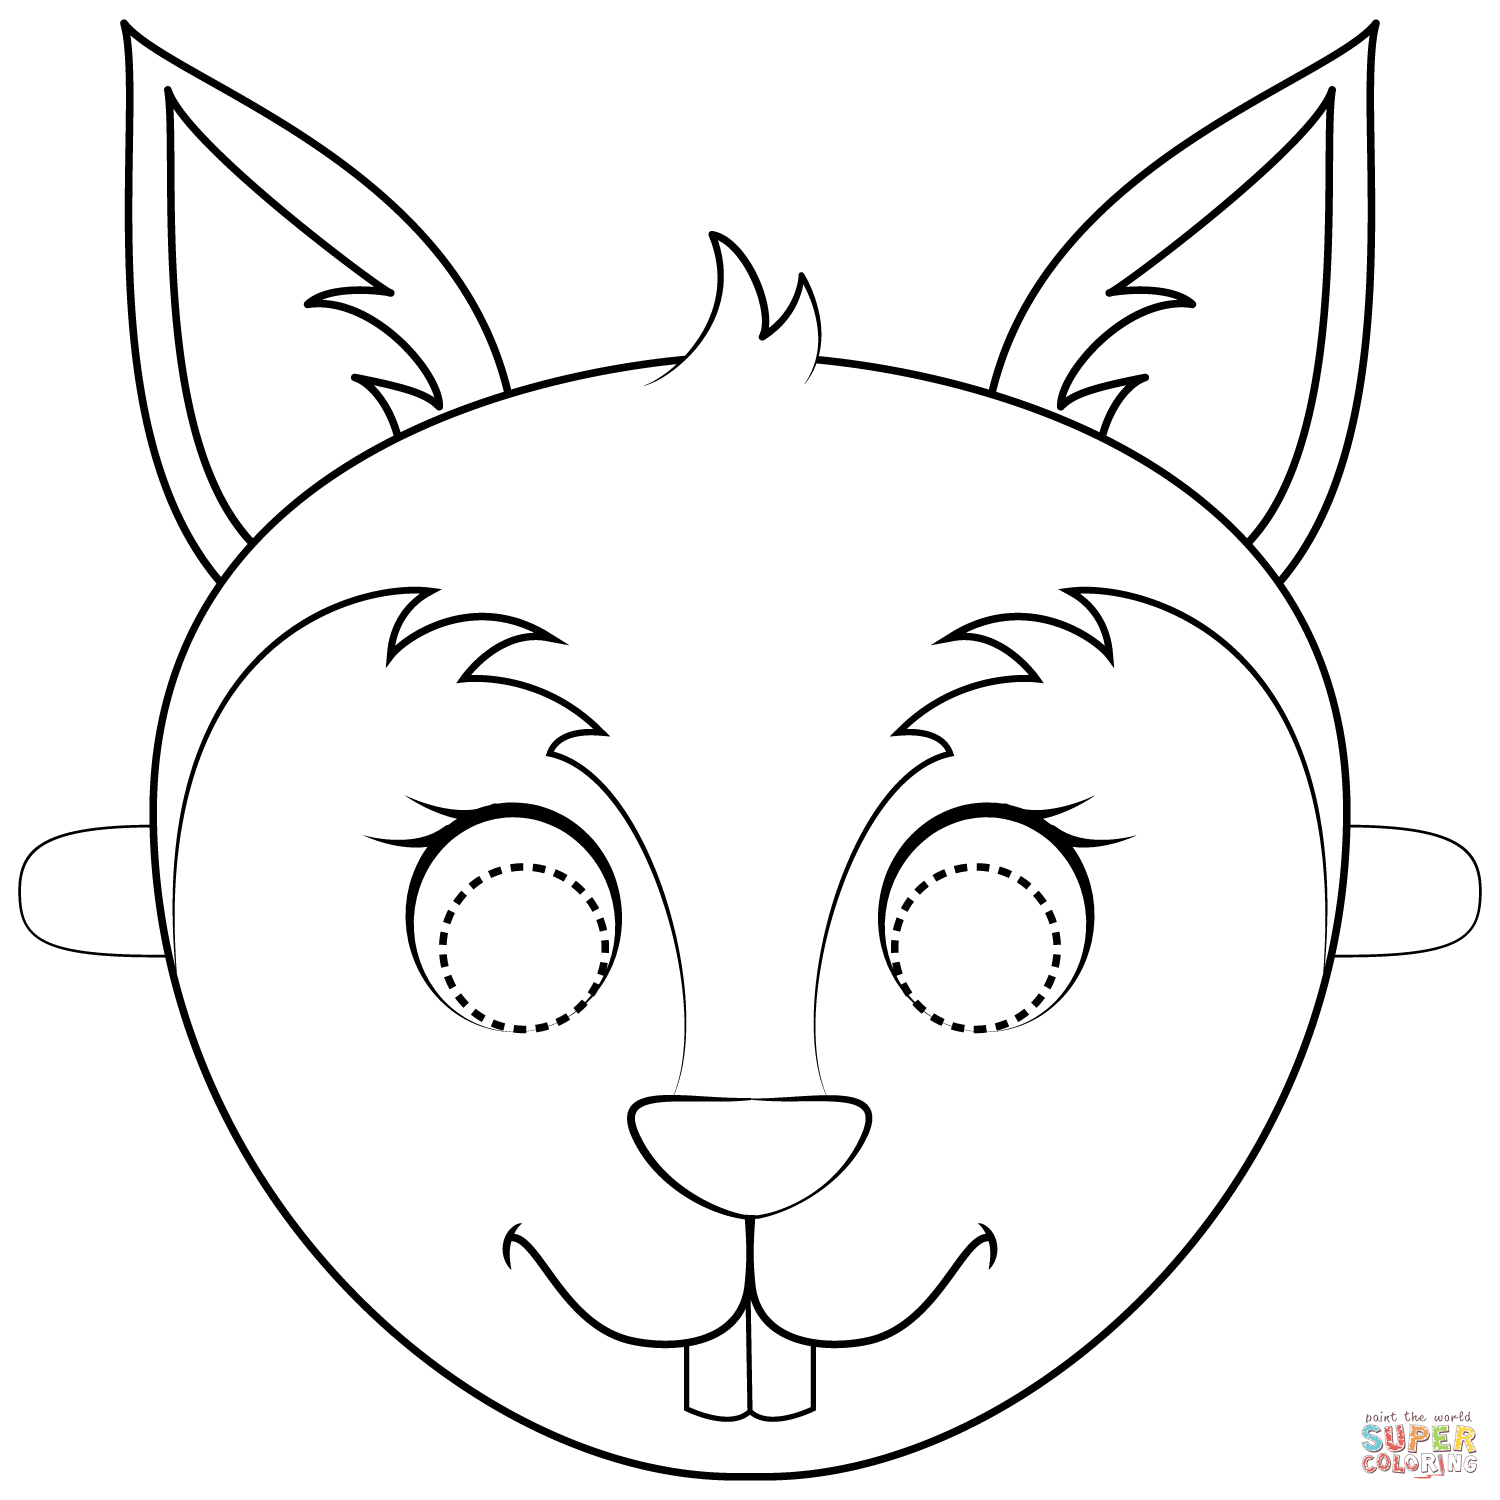 Squirrel Mask Coloring Page | Free Printable Coloring Pages - Free Printable Chipmunk Mask